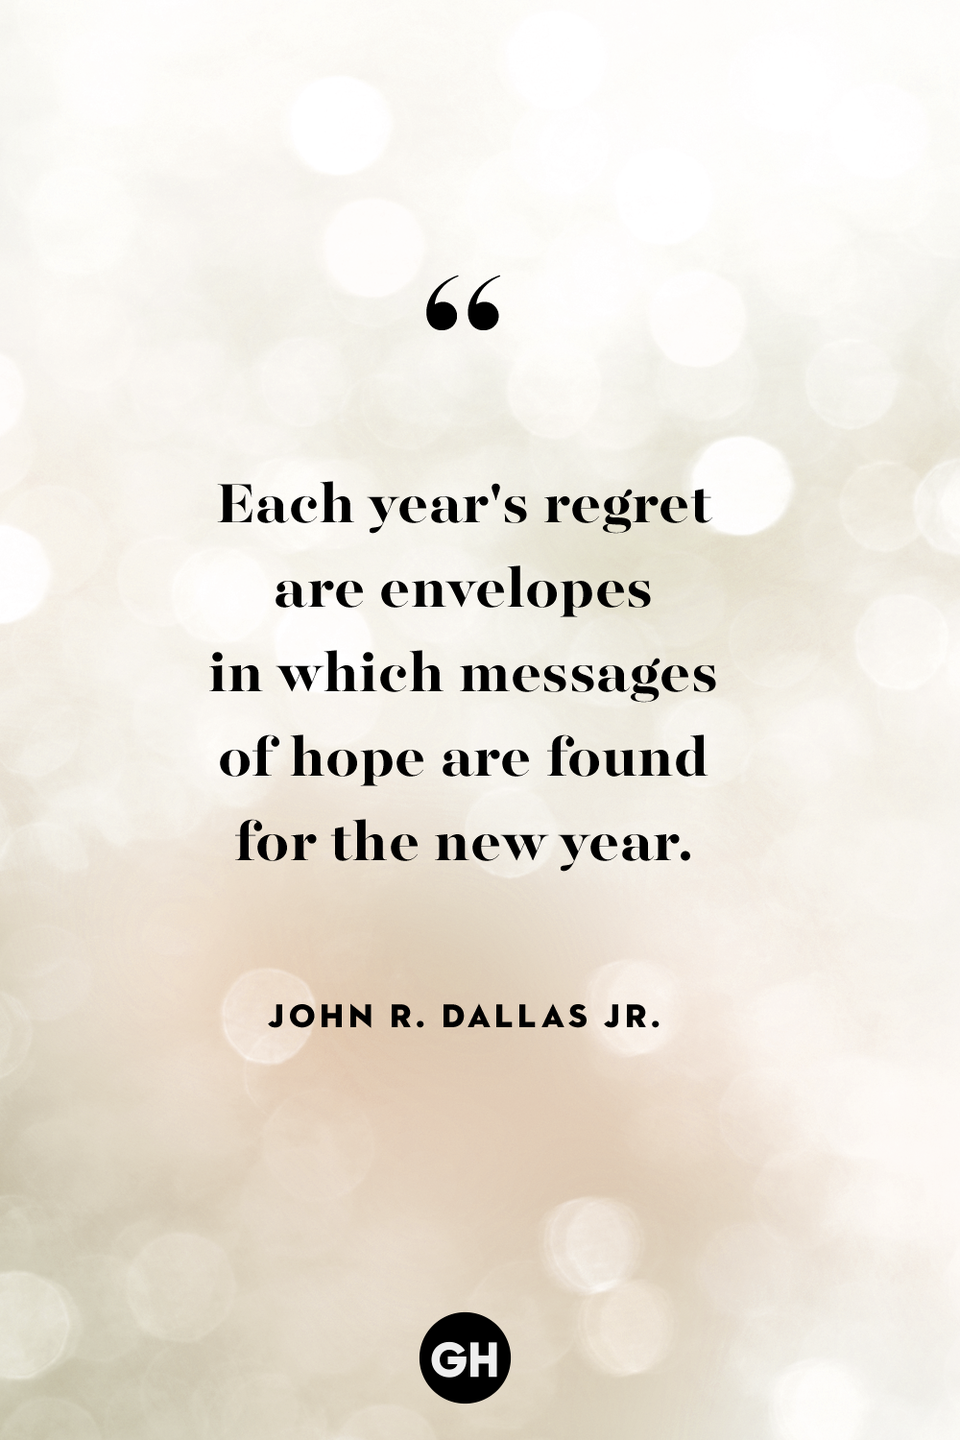 <p>Each year's regret are envelopes in which messages of hope are found for the new year. </p>